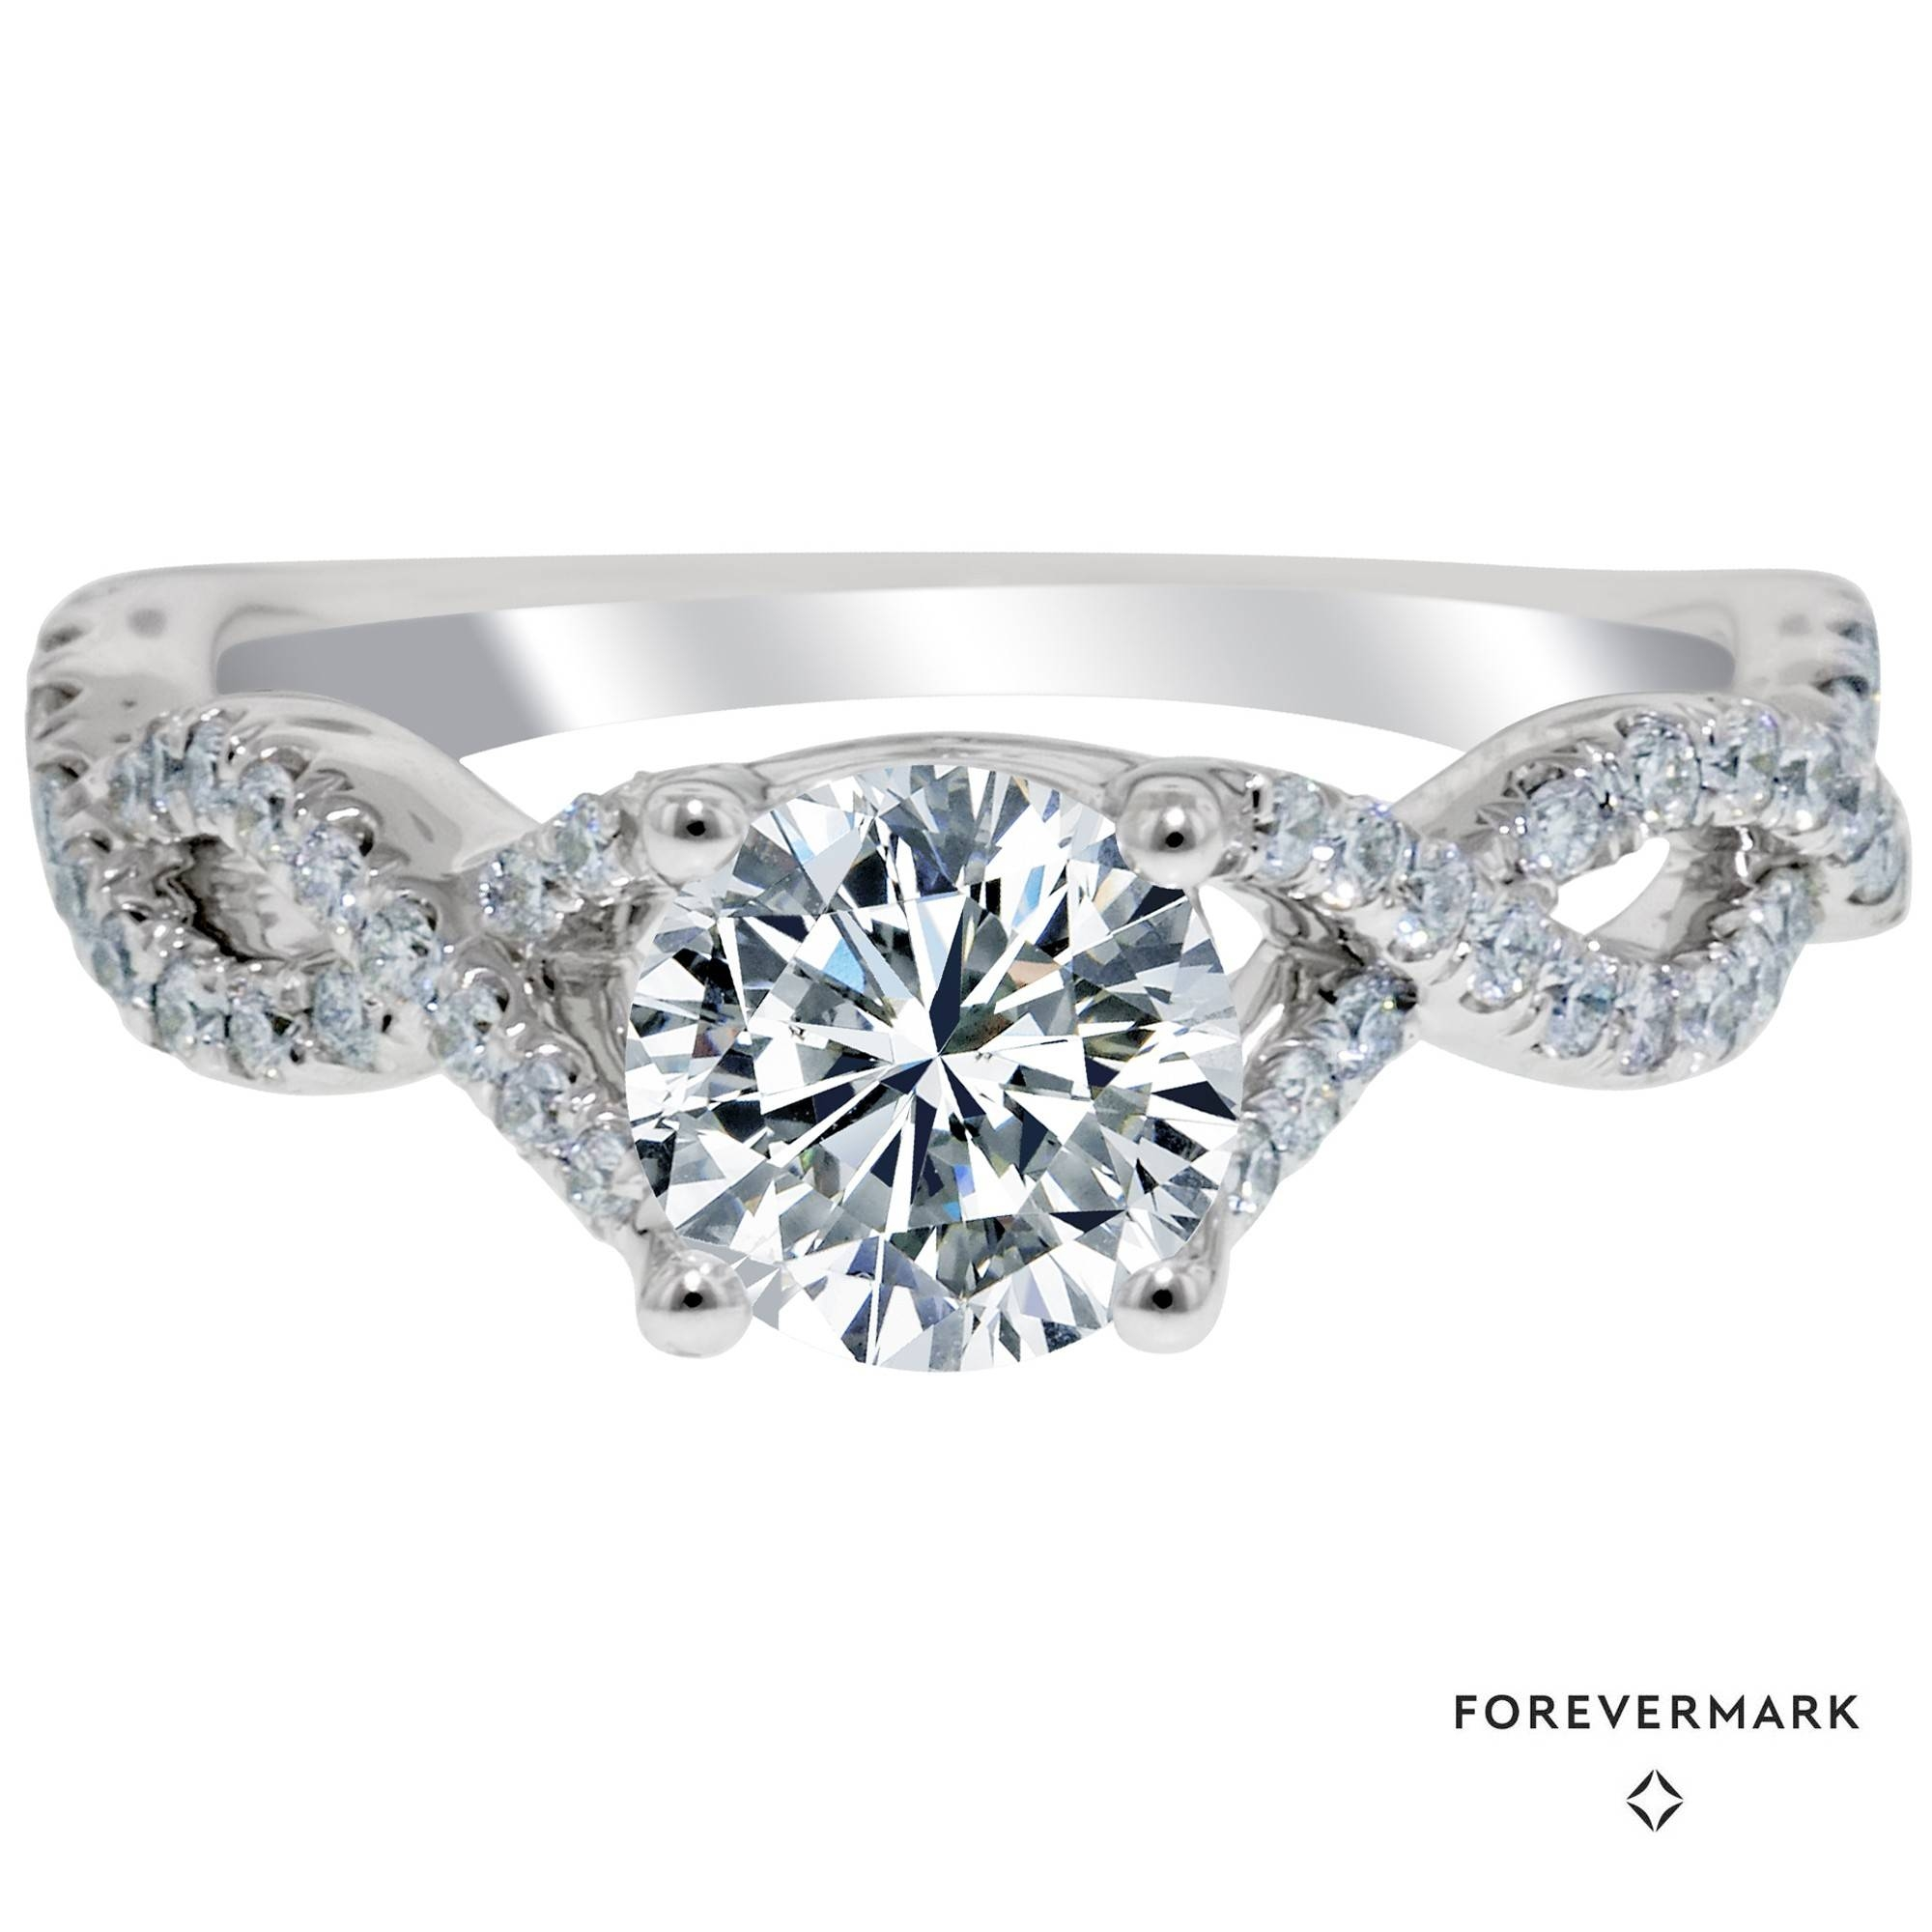 Forevermark Infinity Diamond Engagement Ring In 14Kt White Gold Regarding Infinity Diamond Wedding Rings (Gallery 14 of 15)